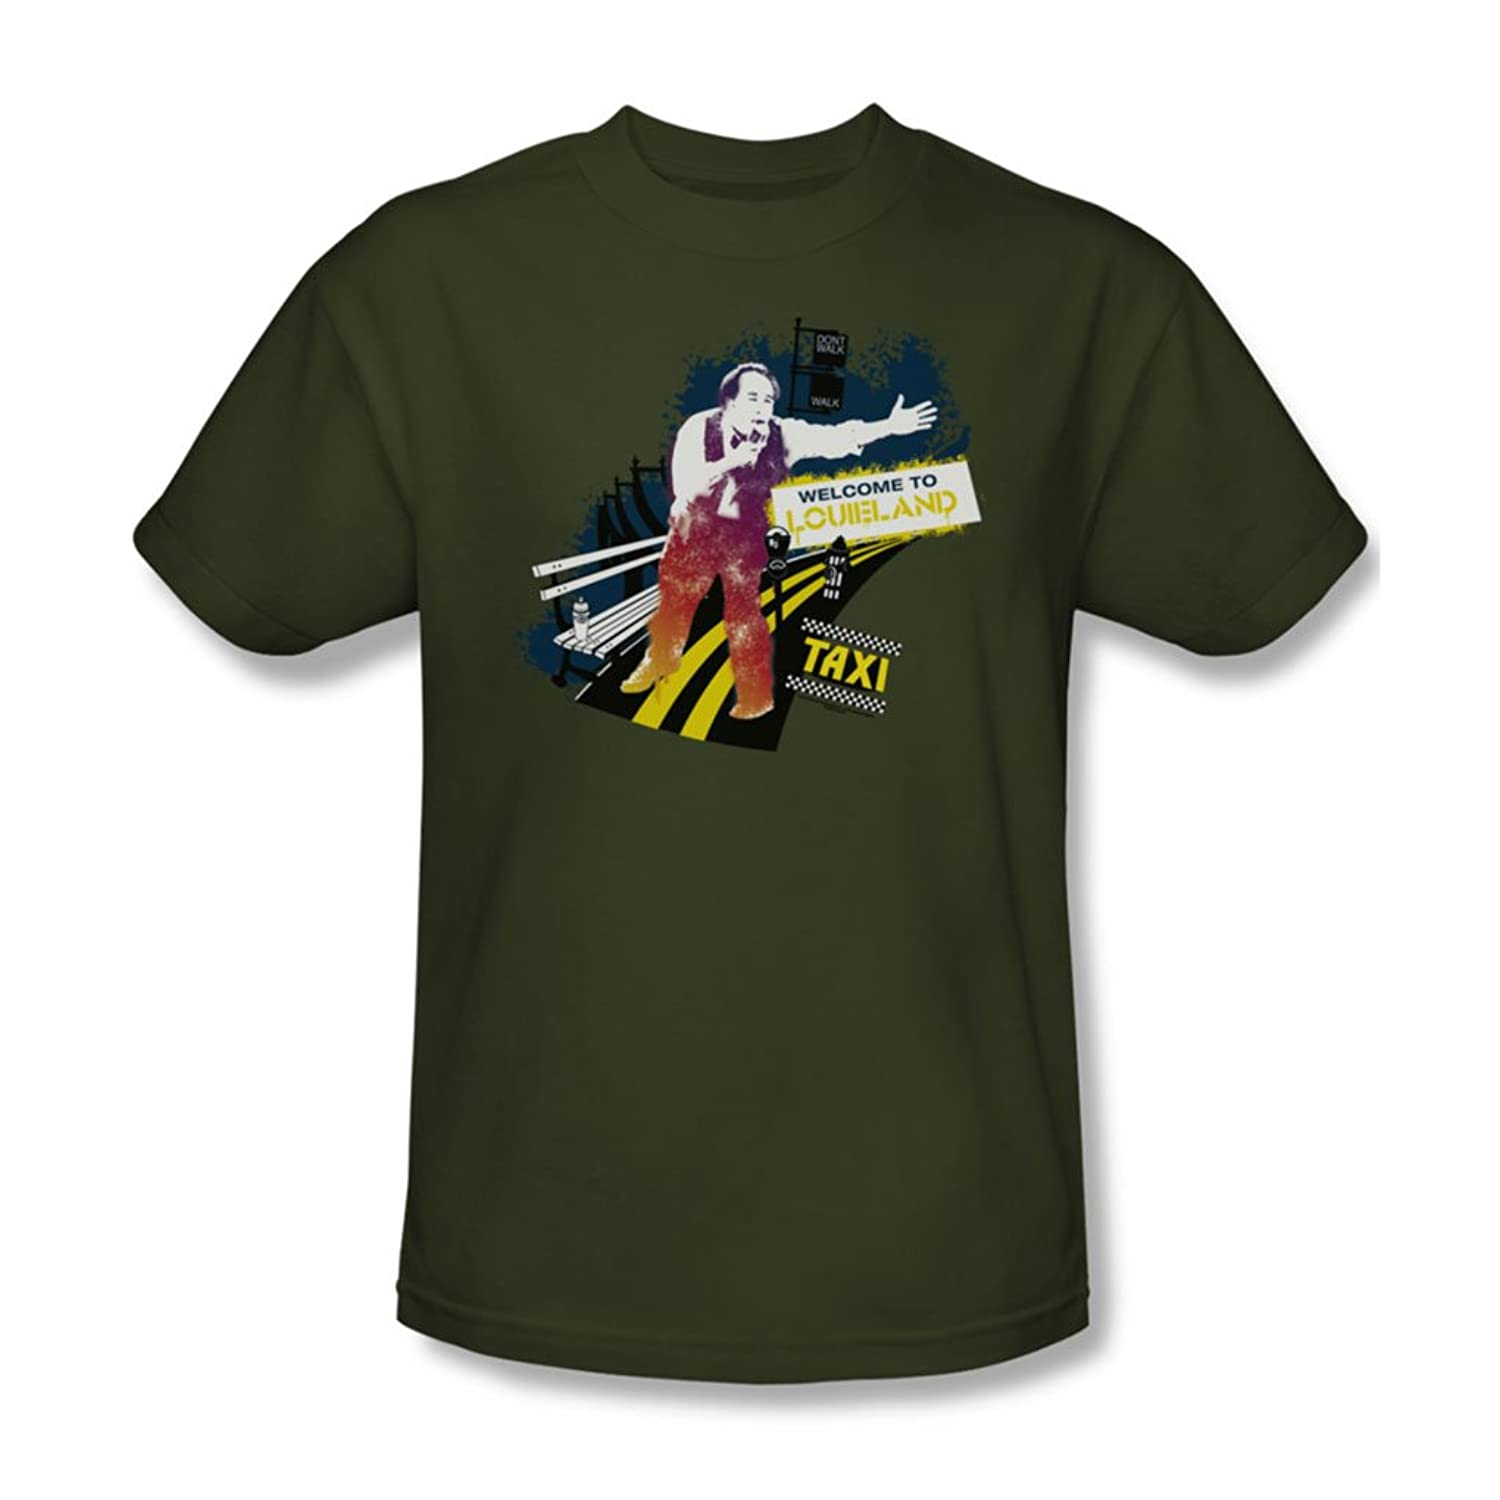 Cbs - Taxi / Louiland Adult T-Shirt In Military Green